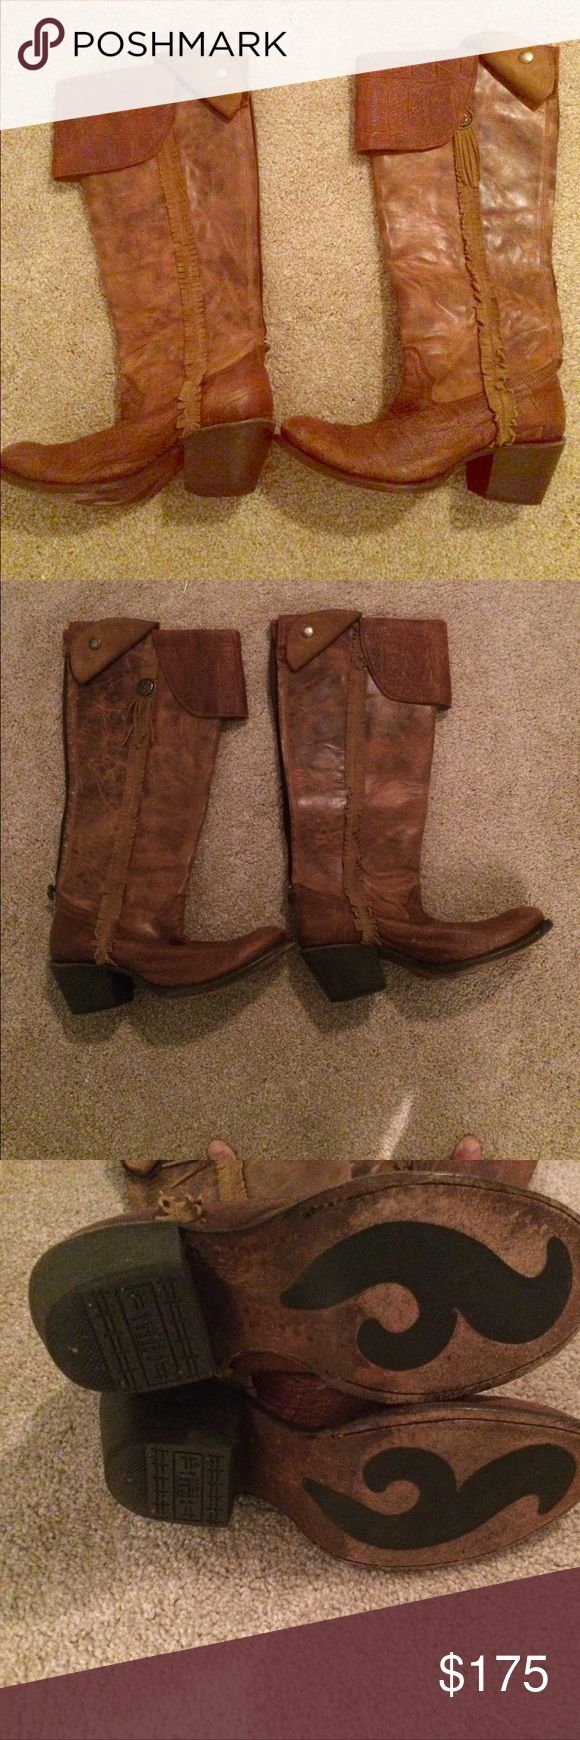 Corral Vintage Boots Tan fray boots. Good used condition! No box. Corral Vintage Shoes Combat & Moto Boots